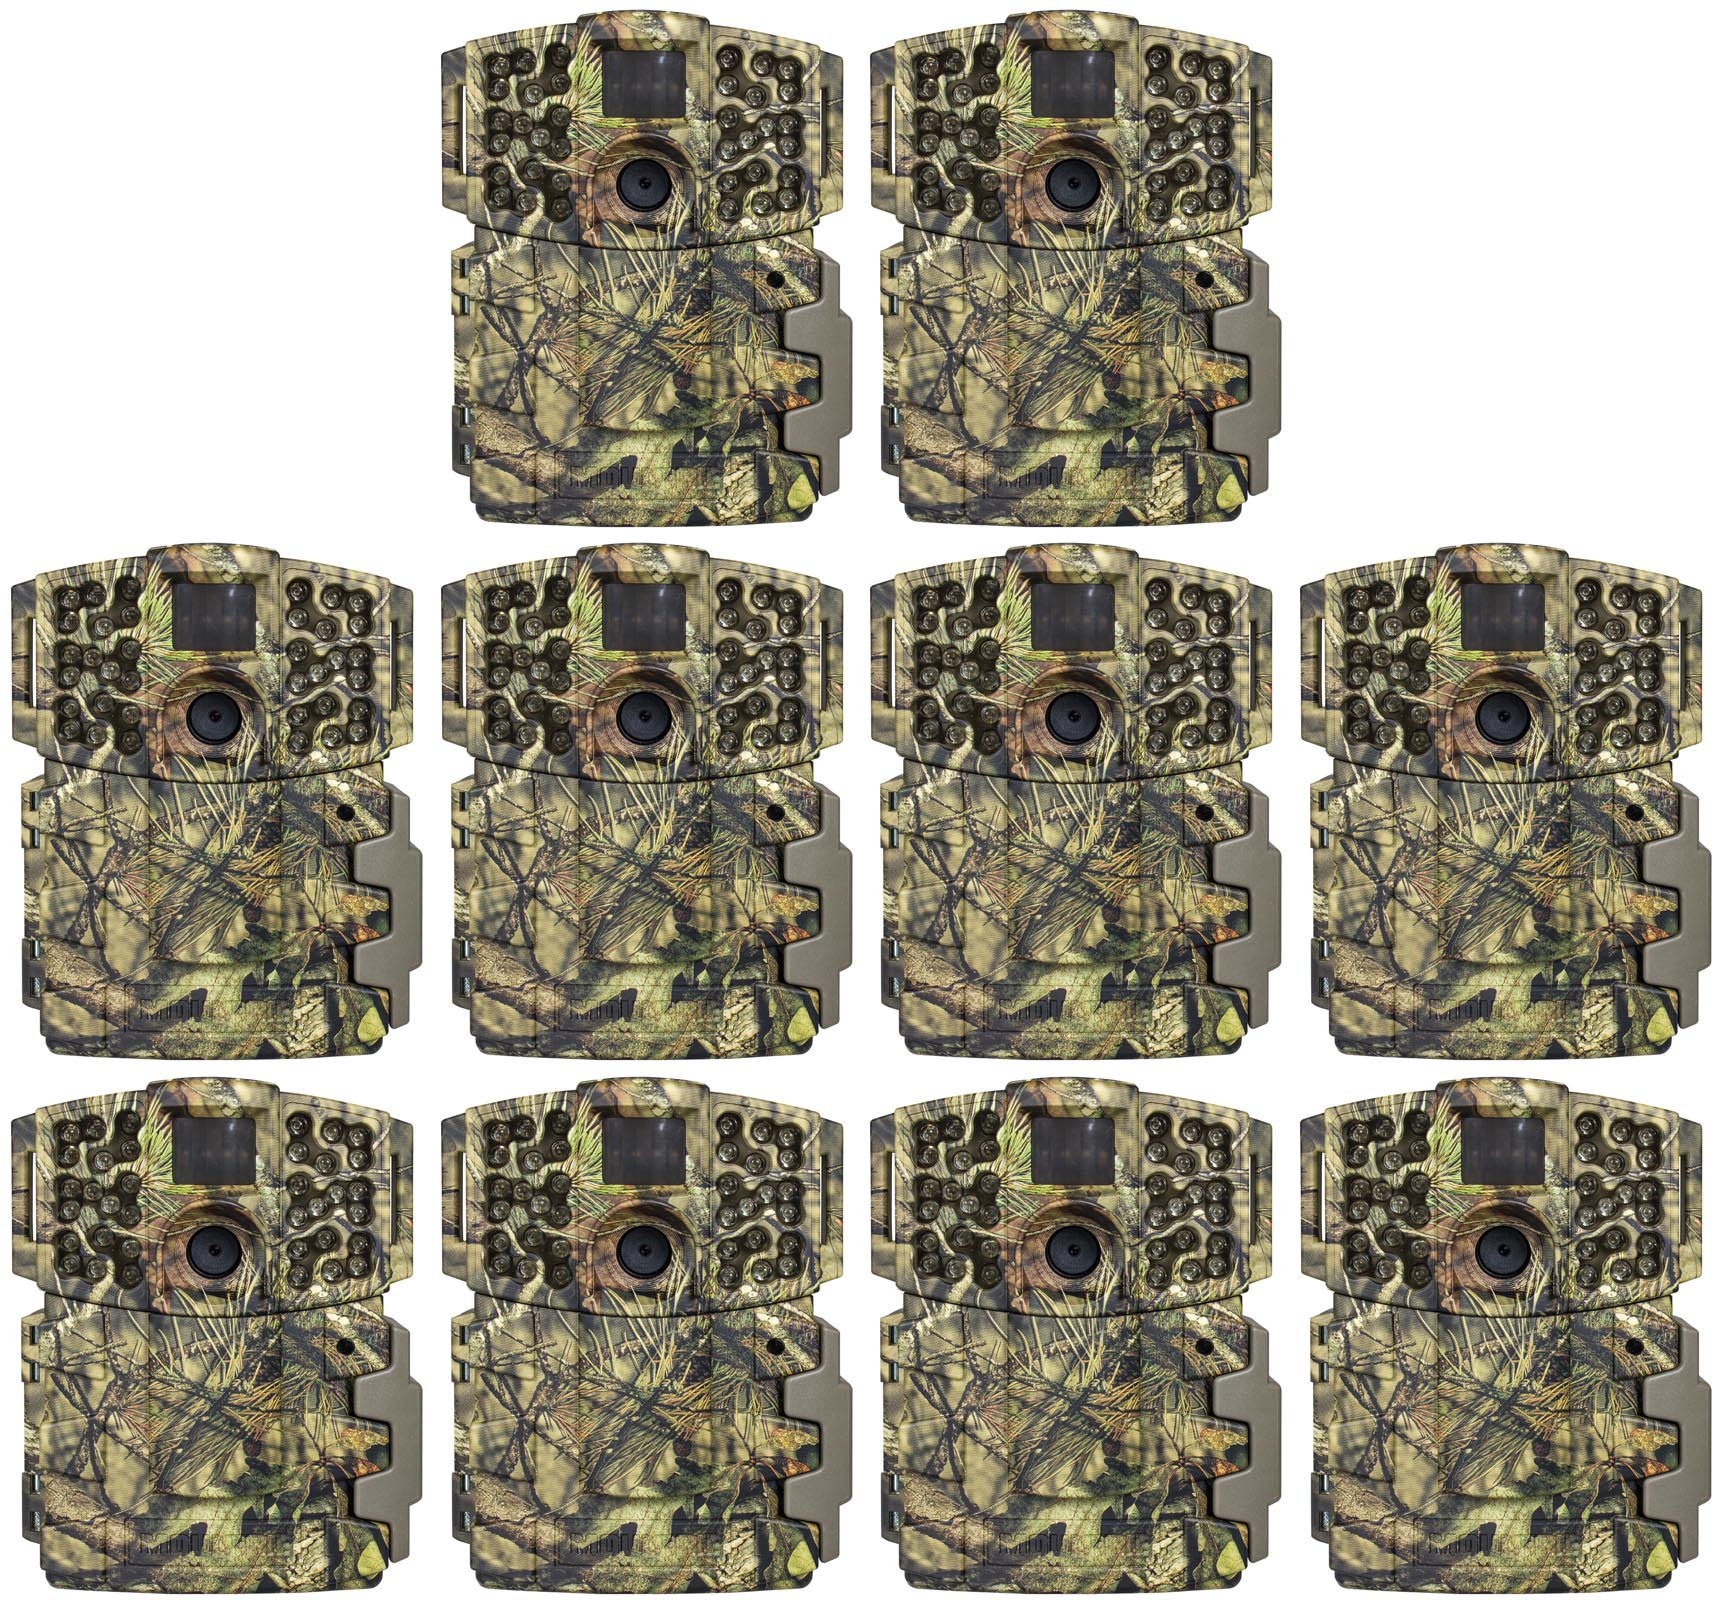 Click here to buy (10) Moultrie No Glow Invisible 20MP Mini 999i Infrared Game Cameras | M-999i by Moultrie.